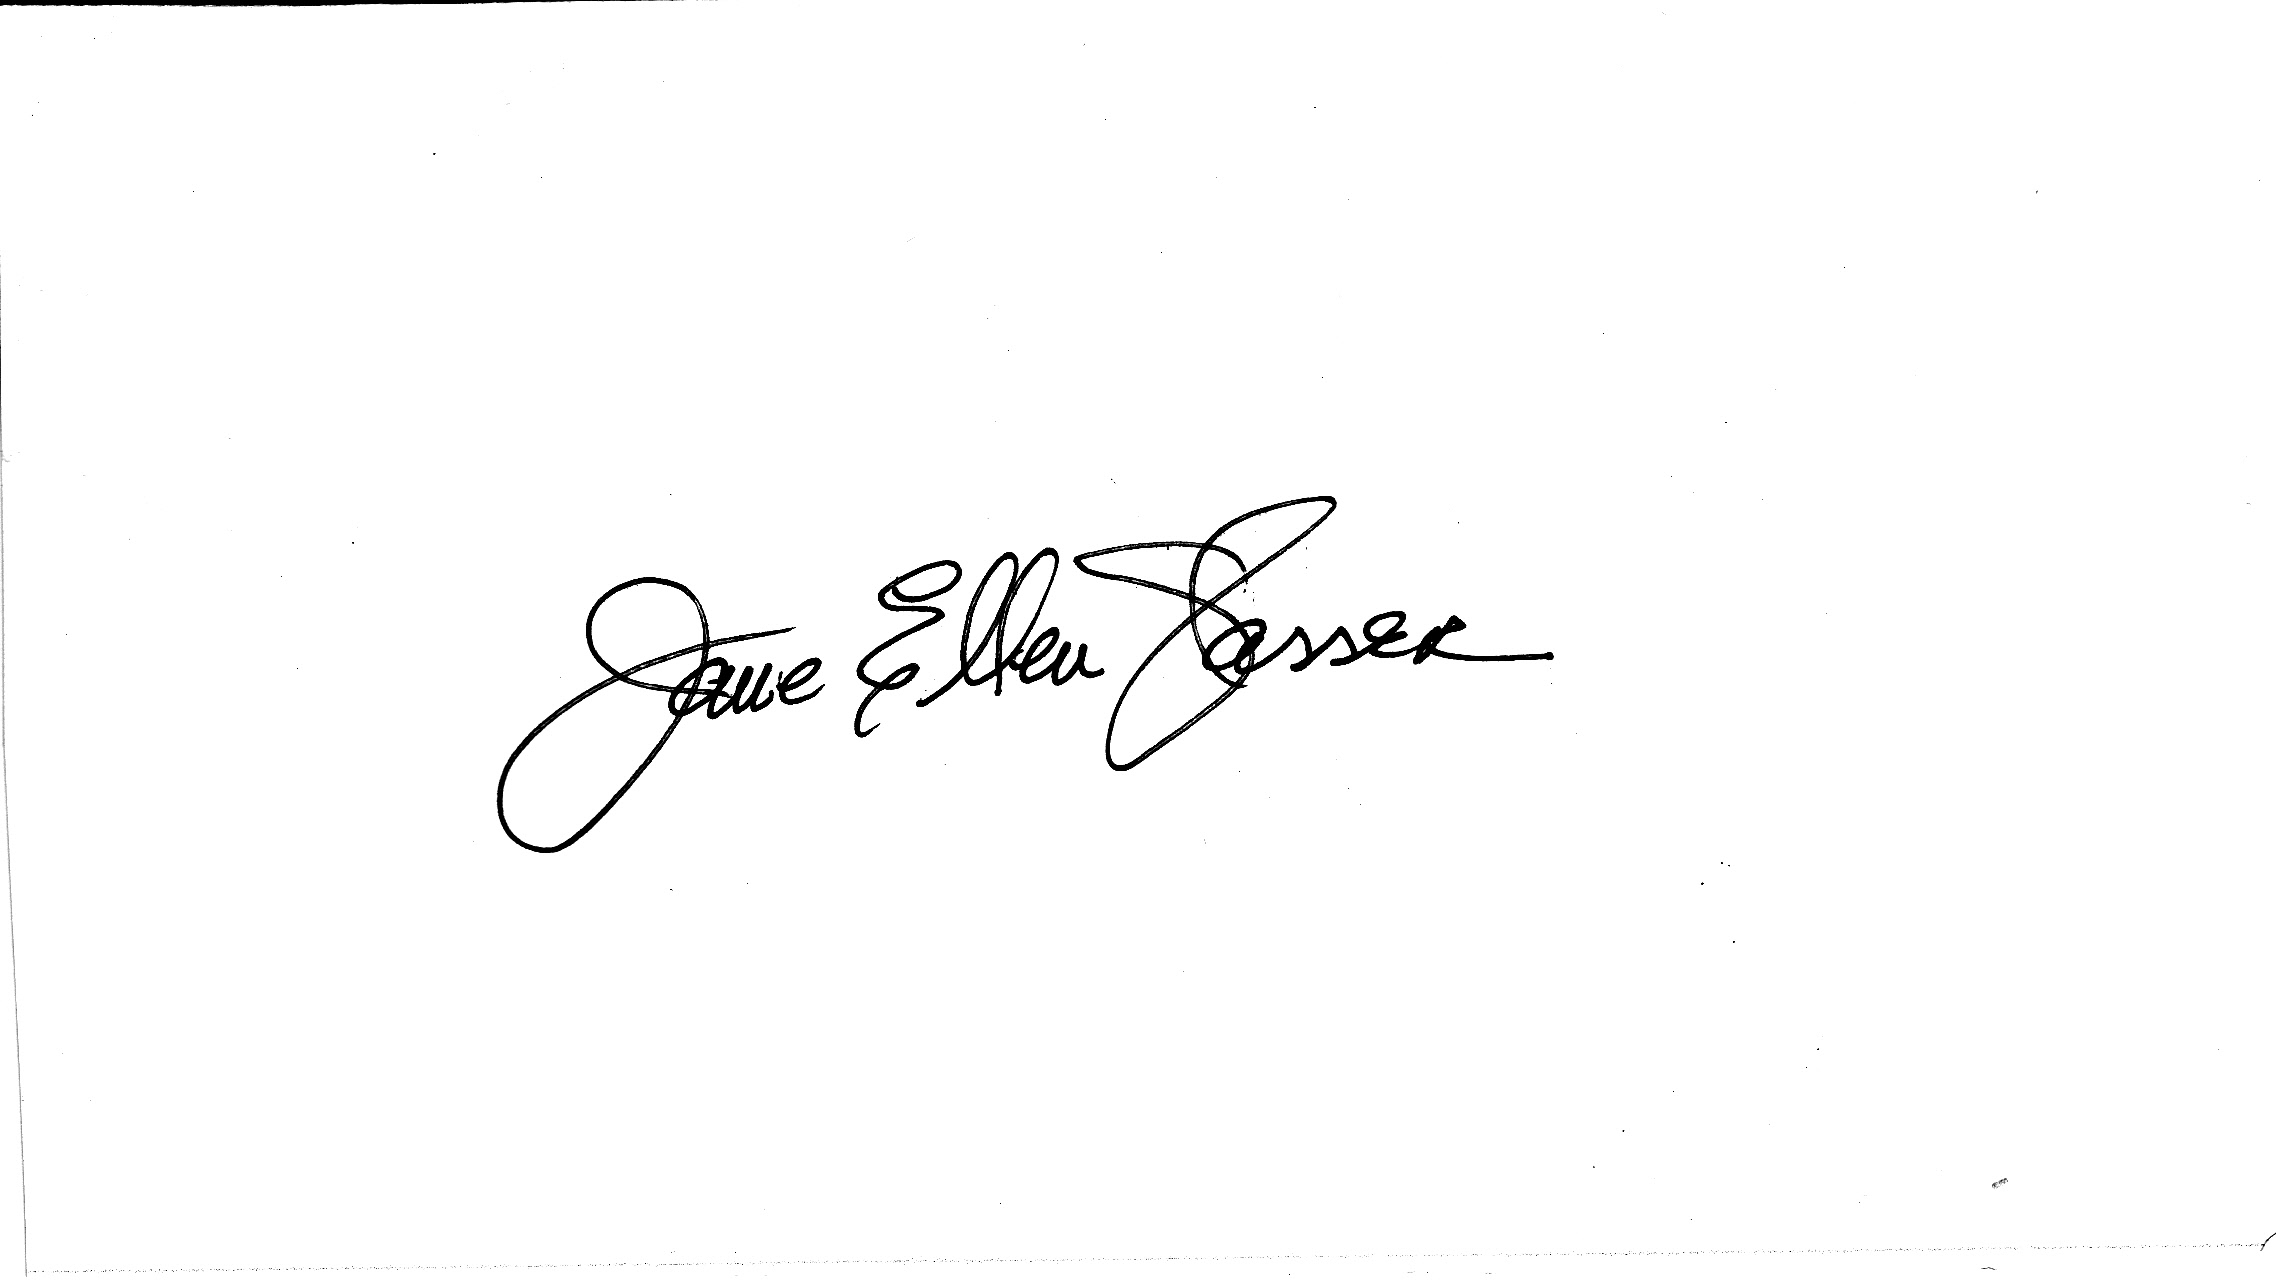 Jane Glasser's Signature